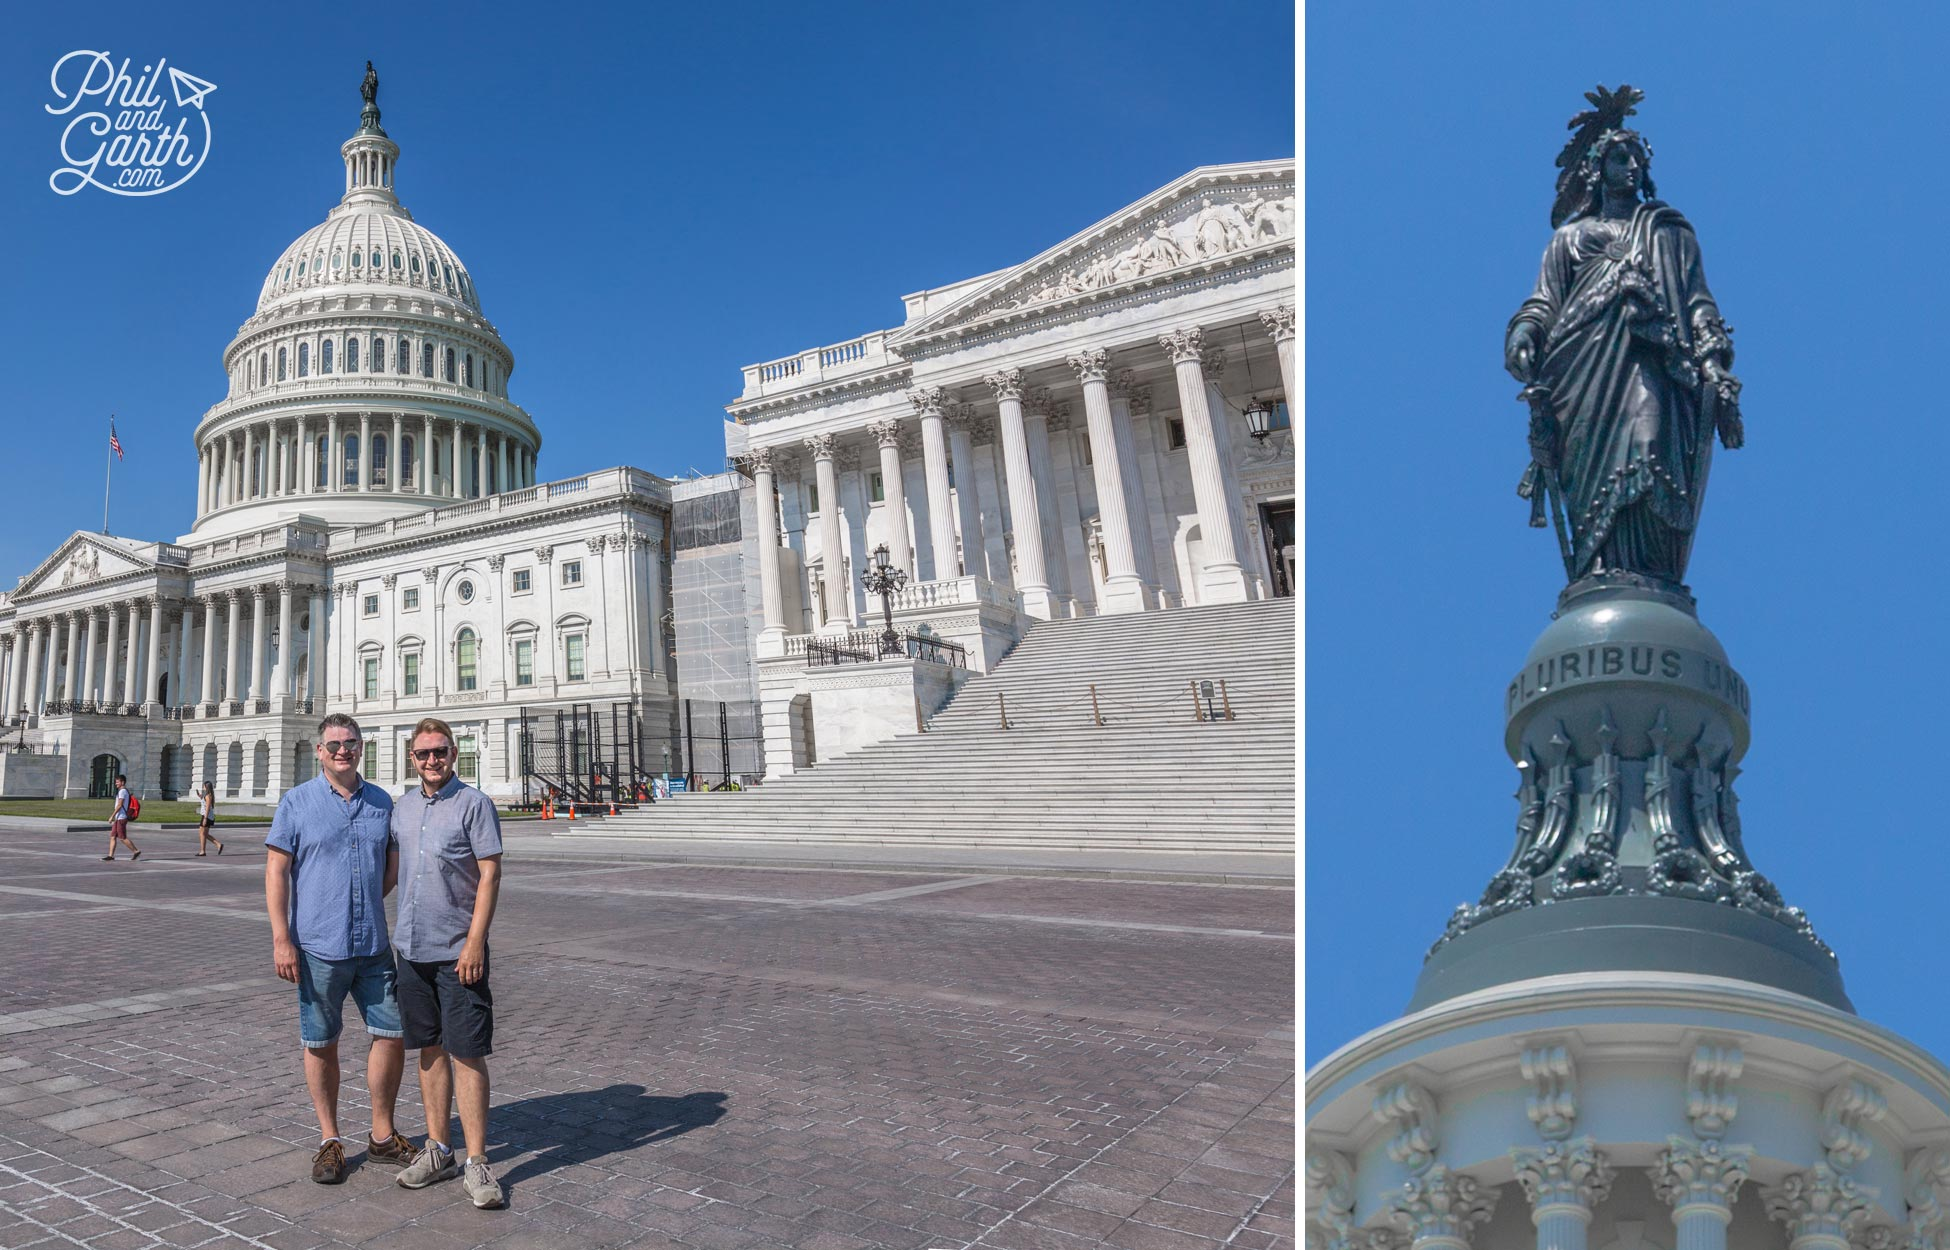 Phil and Garth at the US Capitol & The Freedom Statue close-up